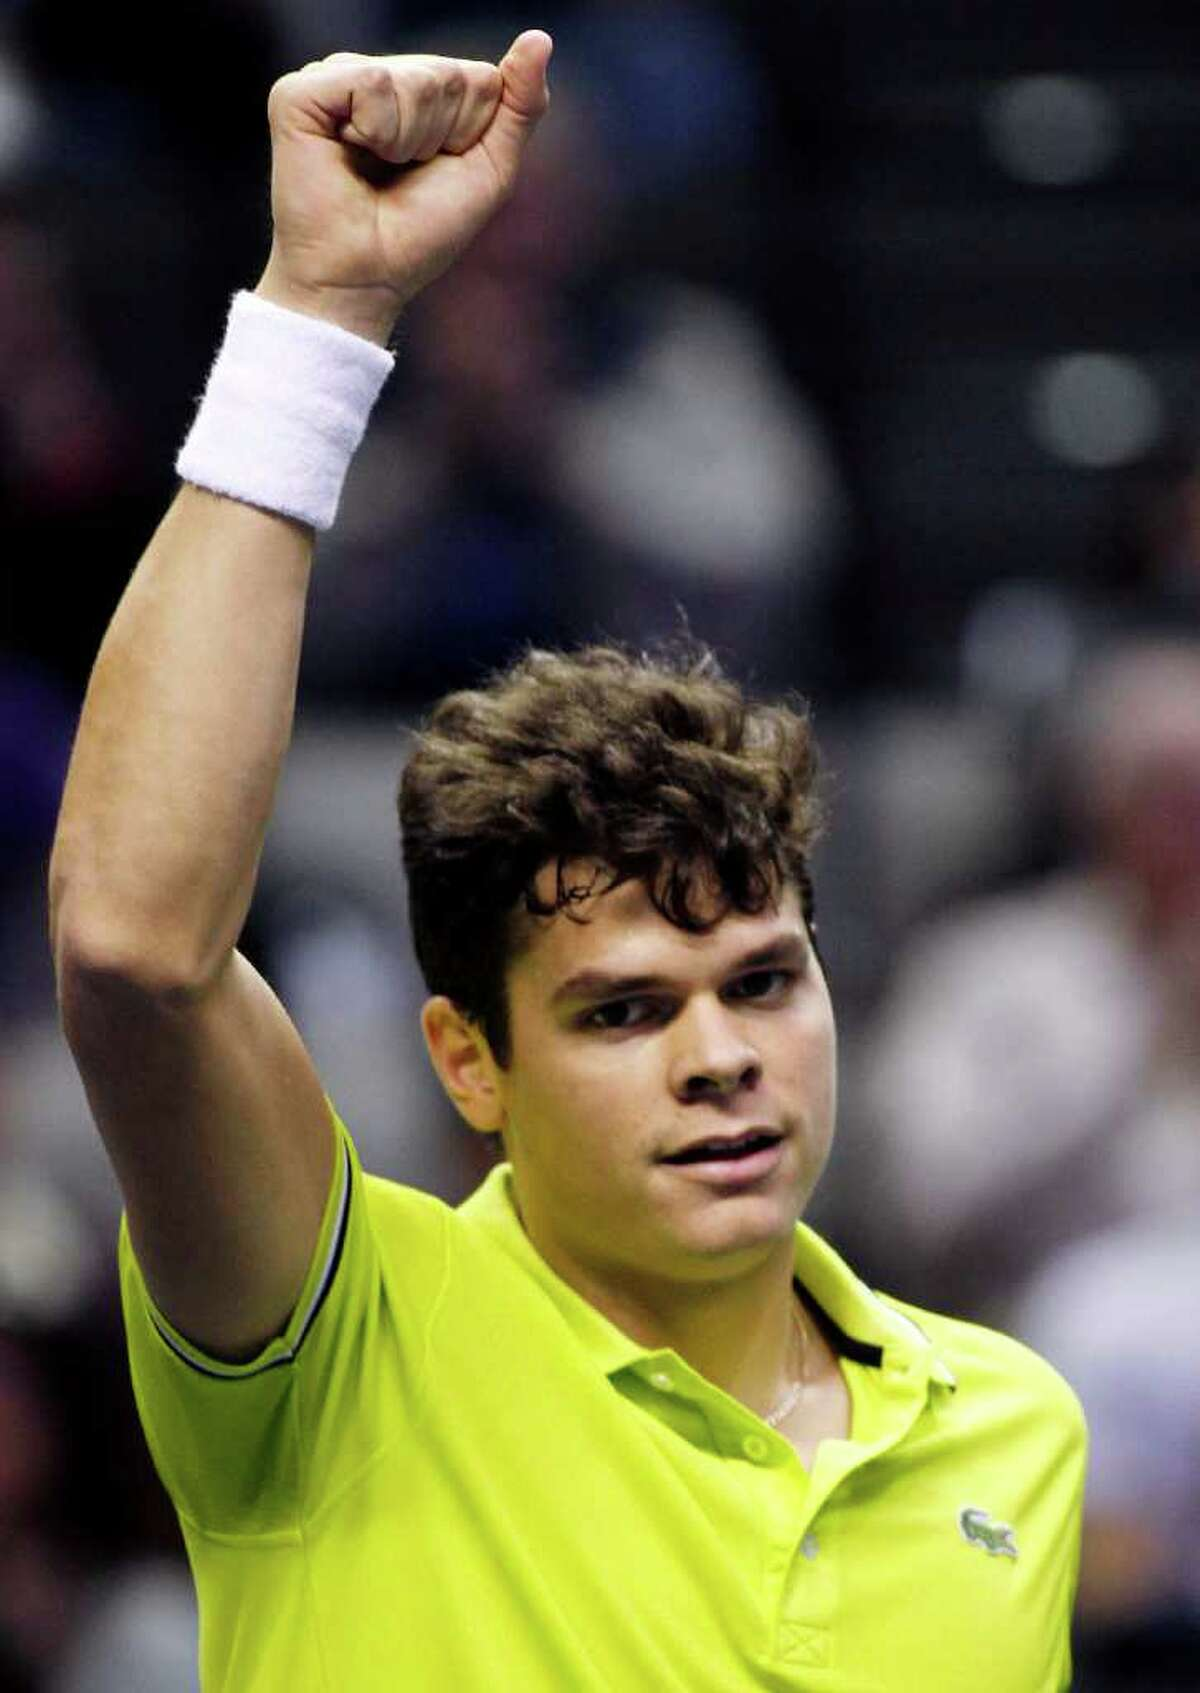 Milos Raonic reacts after defeating Ryan Harrison 7-6 (4), 6-2 in their match at the SAP Open tennis tournament in San Jose, Calif., Saturday, Feb. 18, 2012. (AP Photo/George Nikitin)